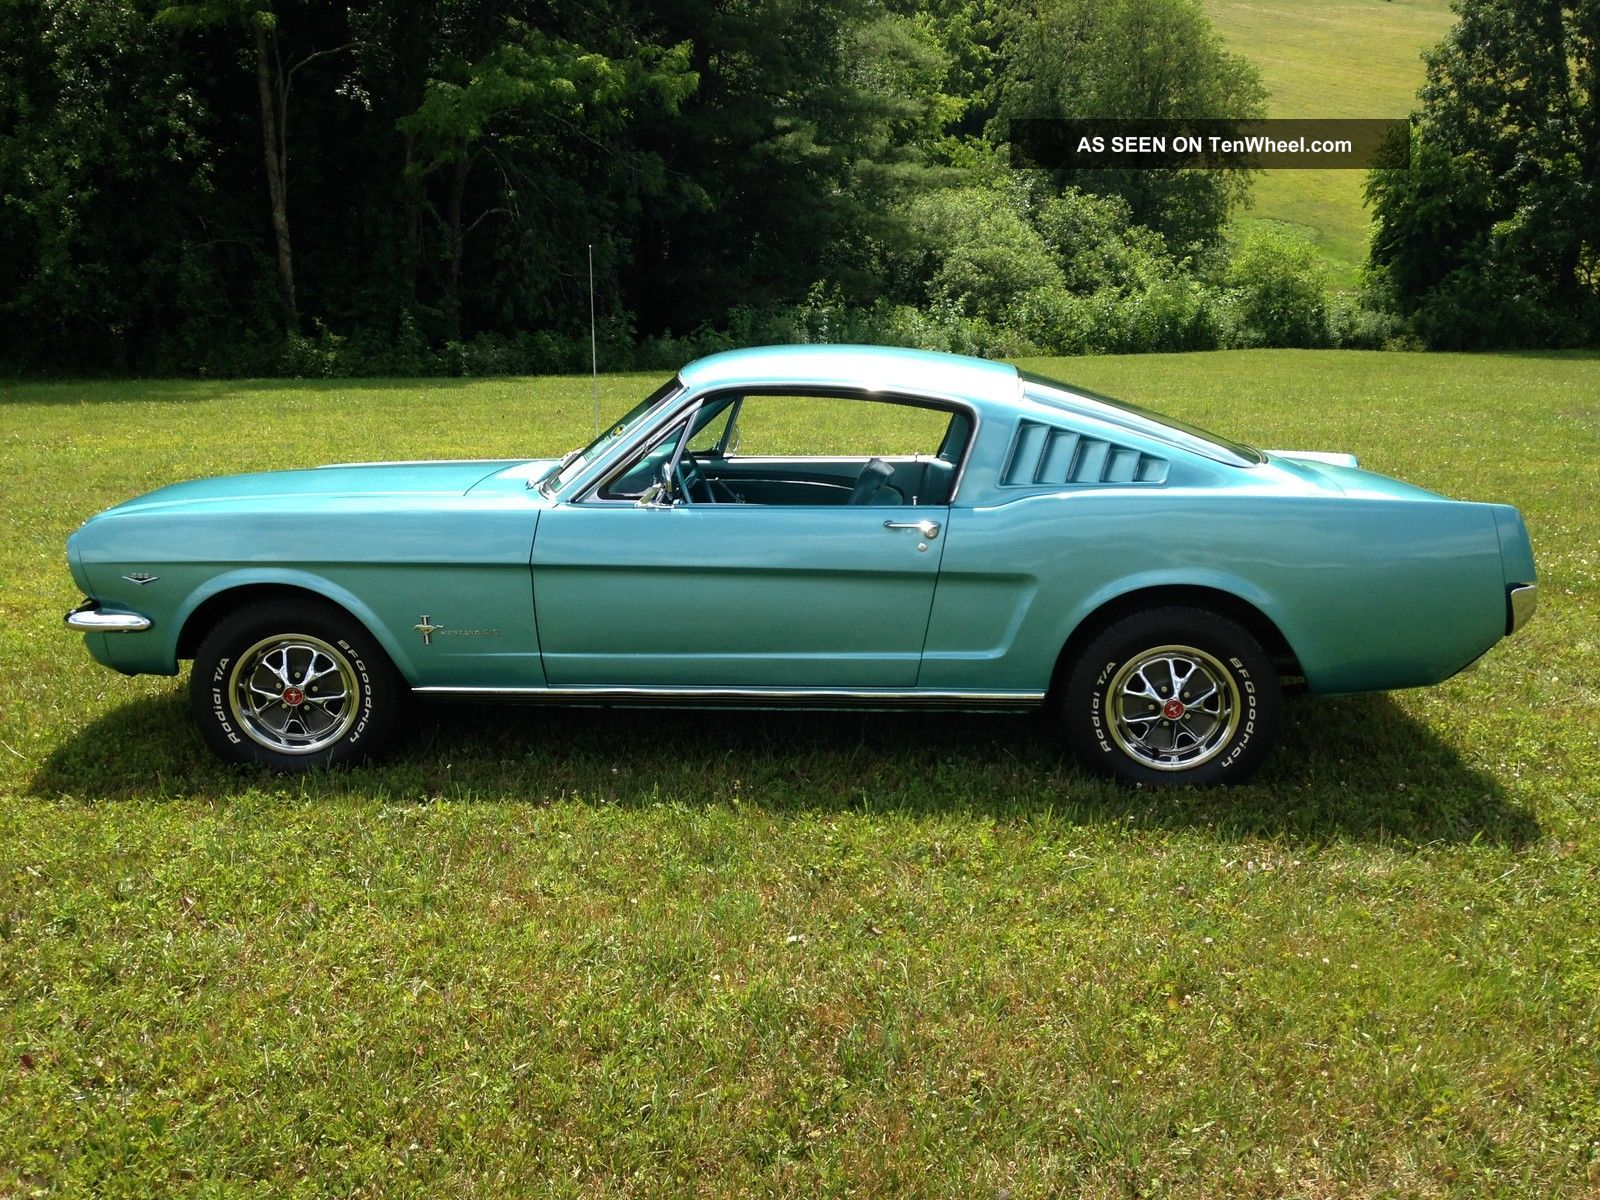 1966 Ford Mustang Fastback 2+2